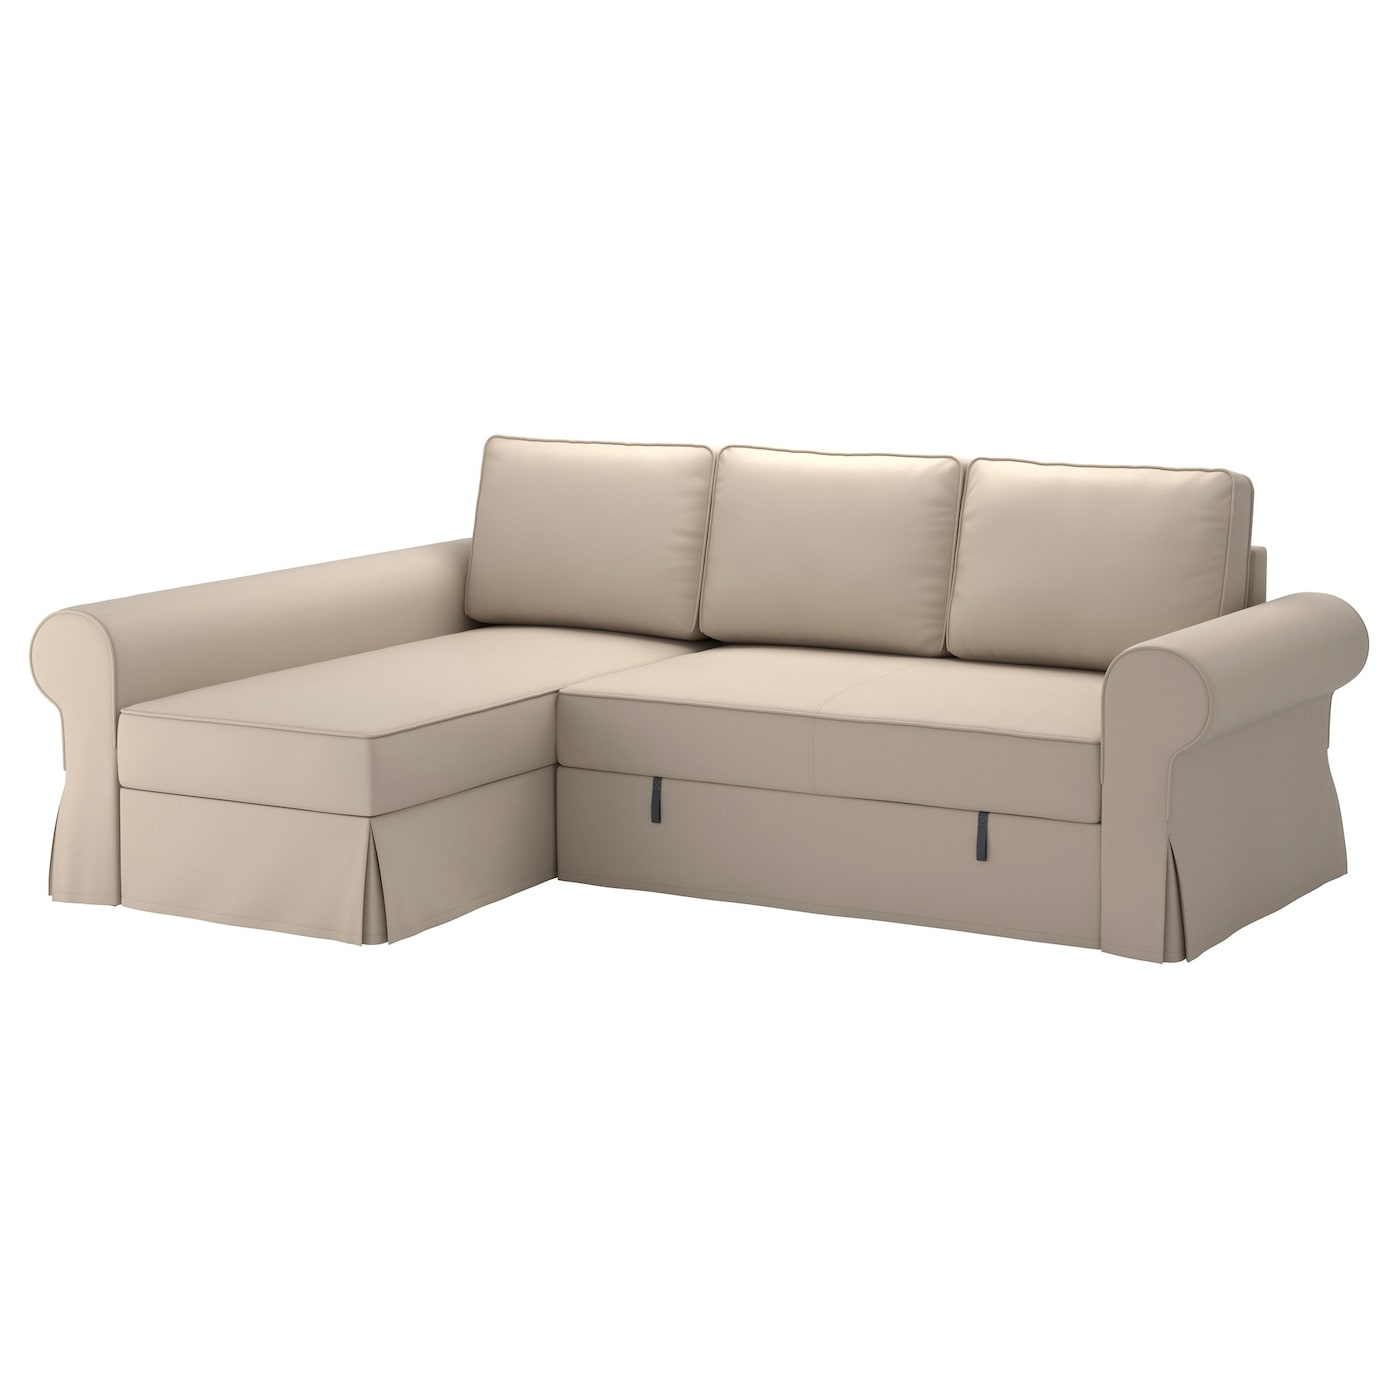 Backabro sofa bed with chaise longue ramna beige ikea for Bed chaise longue